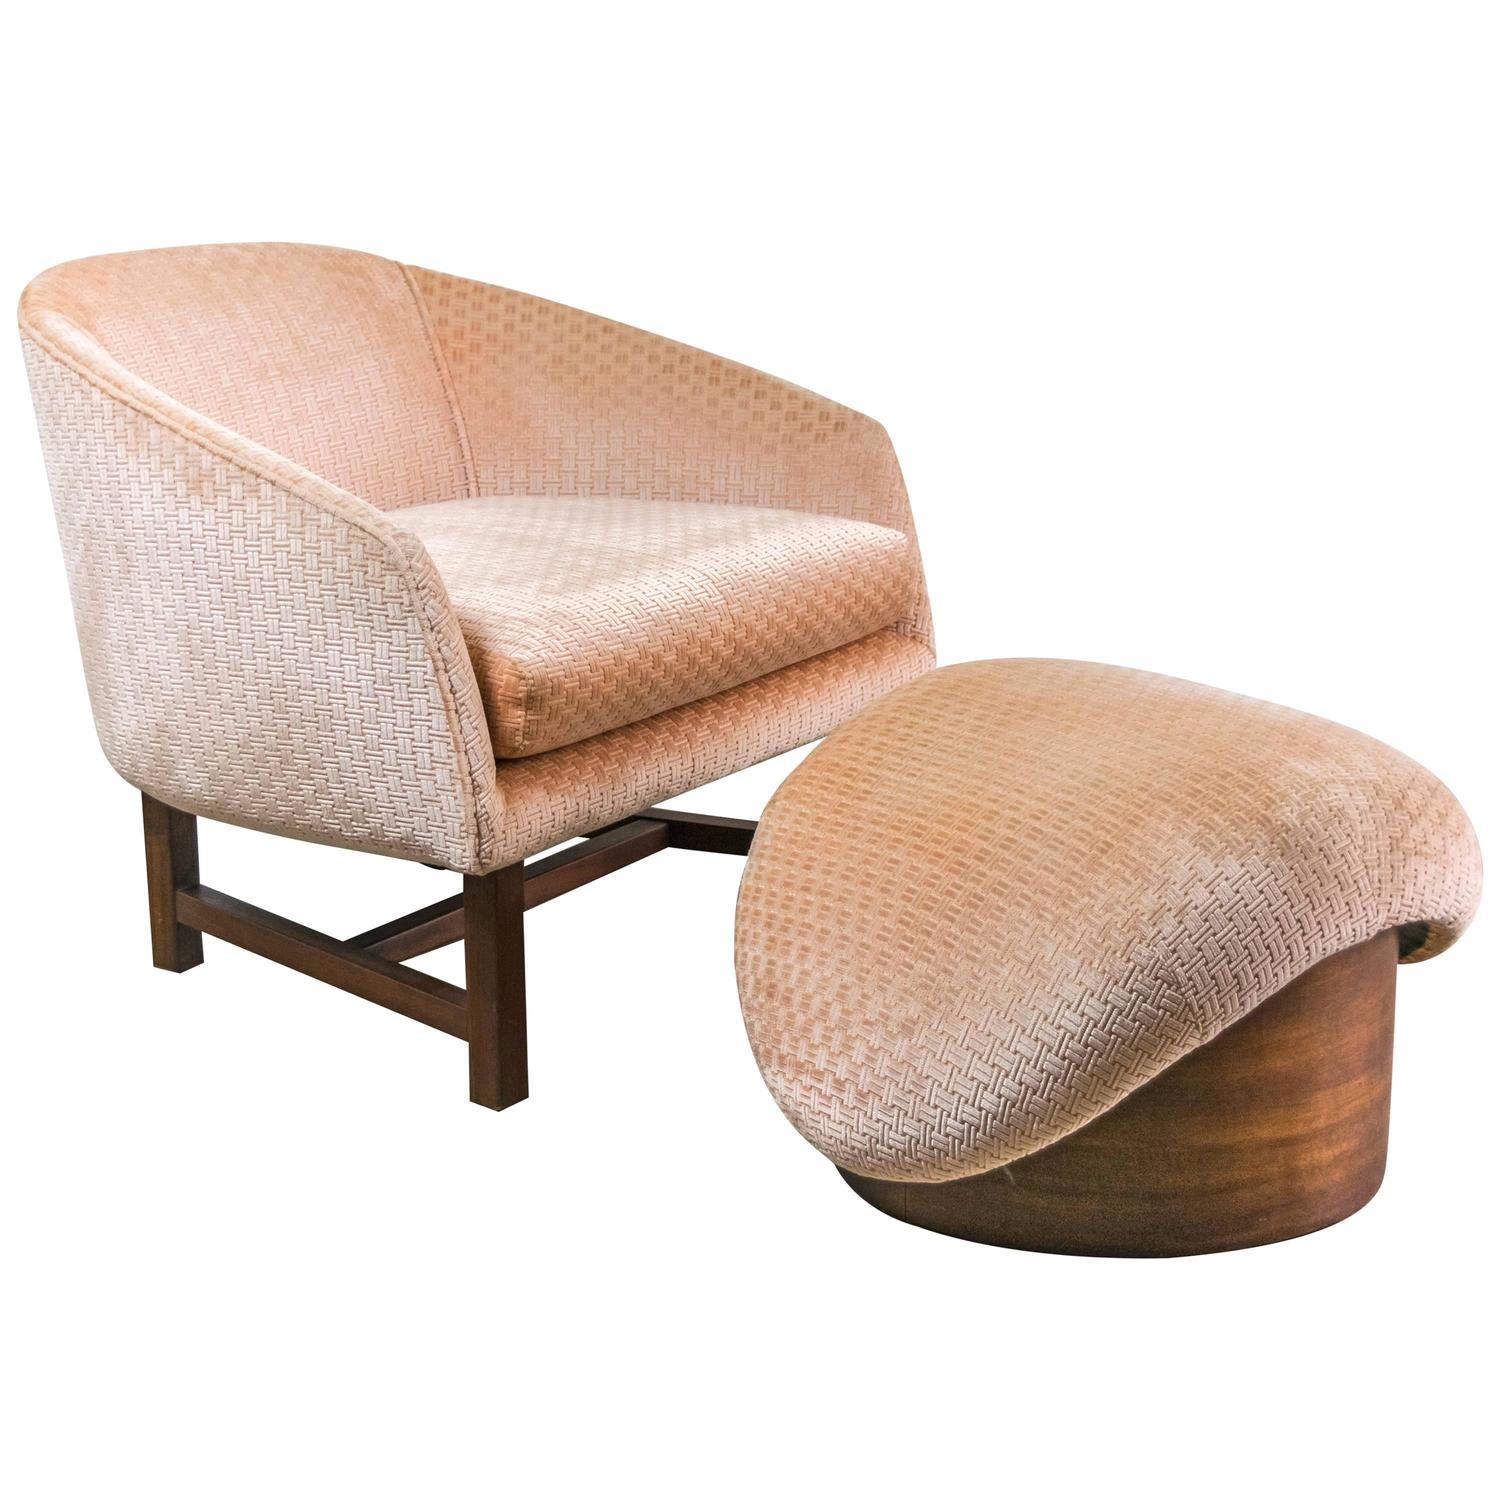 Mid century modern reading chair and ottoman at 1stdibs Mid century chairs